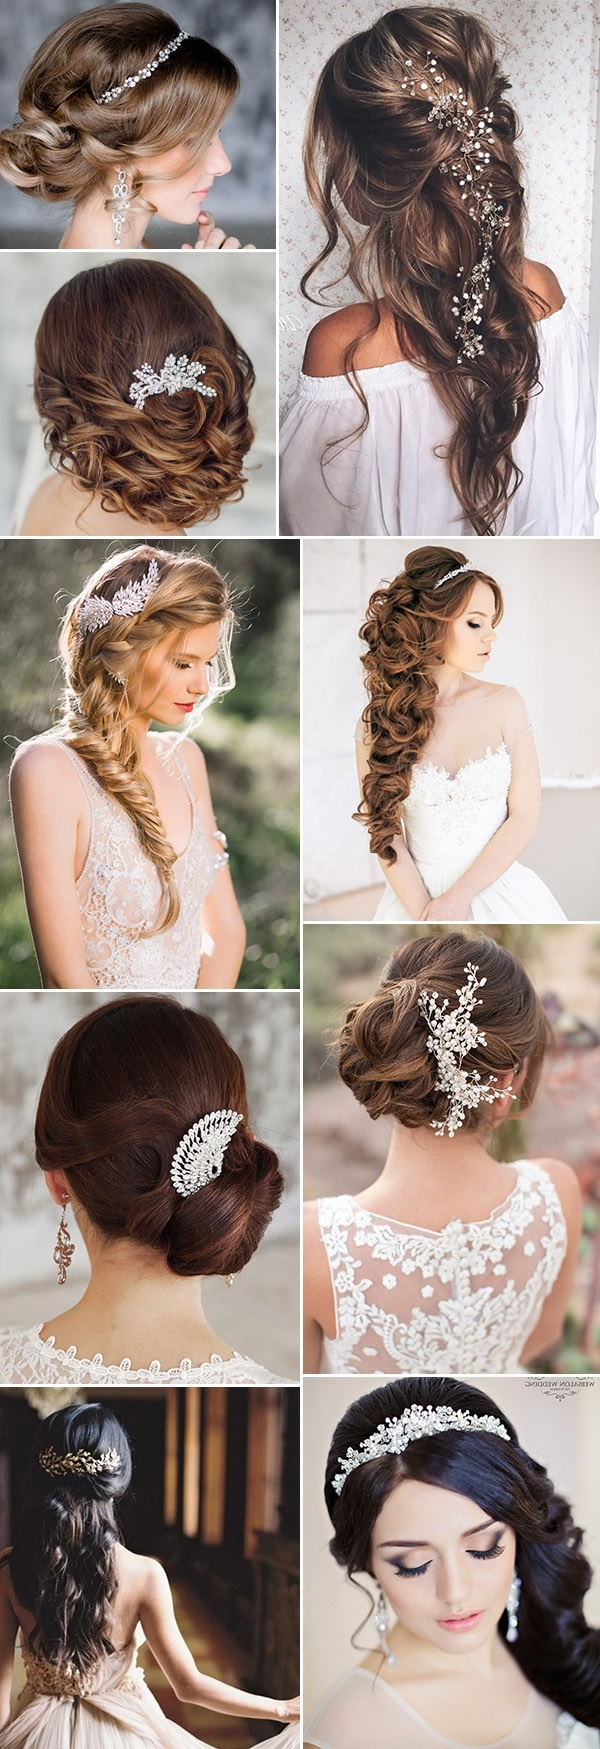 2018 Wedding Hairstyles With Jewels Within Top 20 Bridal Headpieces For Your Wedding Hairstyles (View 3 of 15)